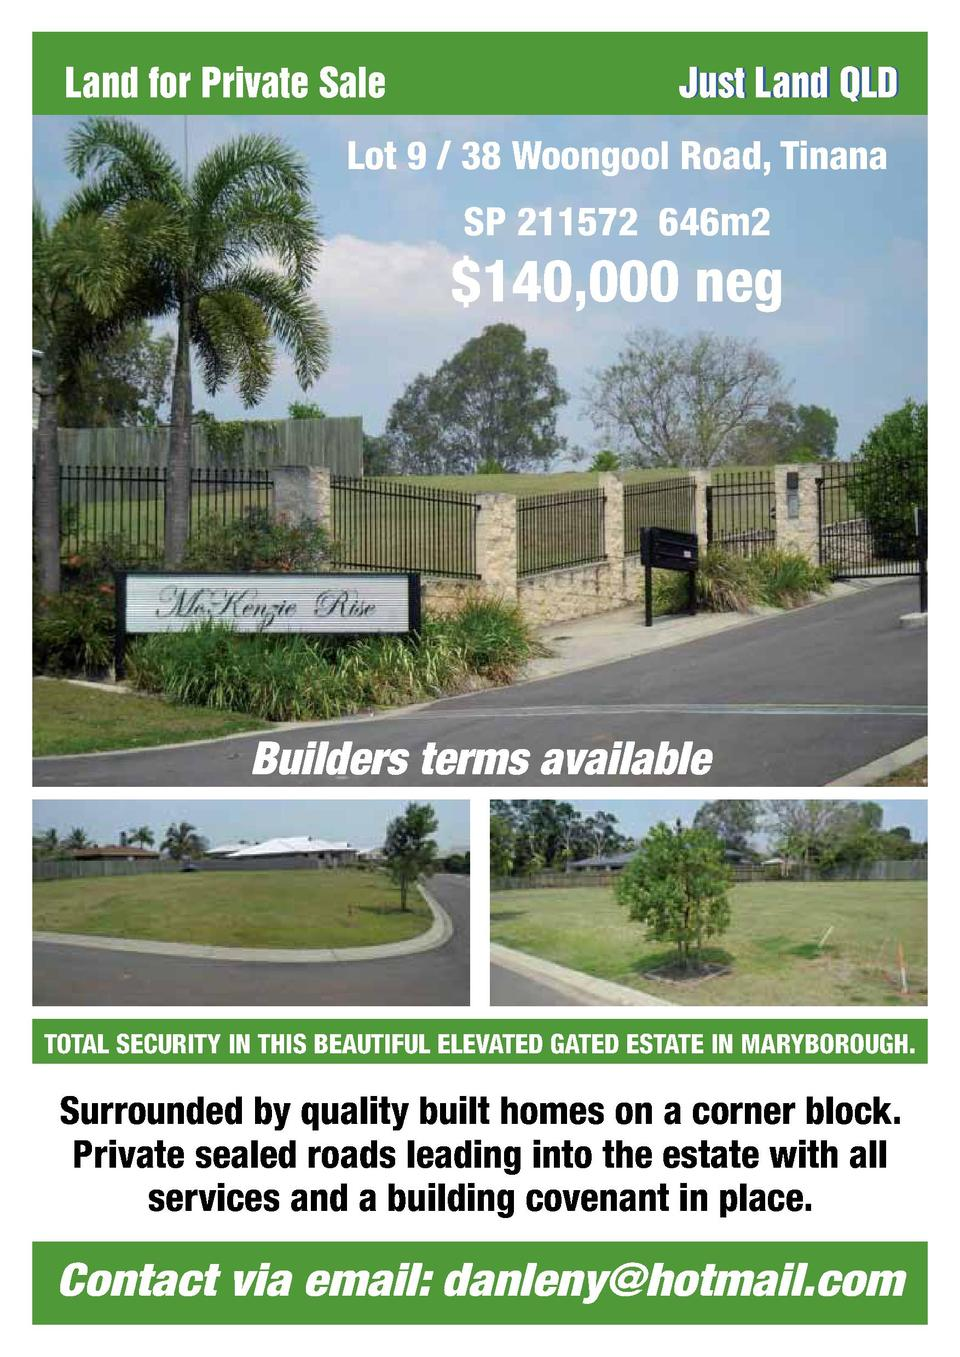 Land for Private Sale  Just Land QLD  Lot 9   38 Woongool Road, Tinana SP 211572 646m2   140,000 neg  Builders terms avail...